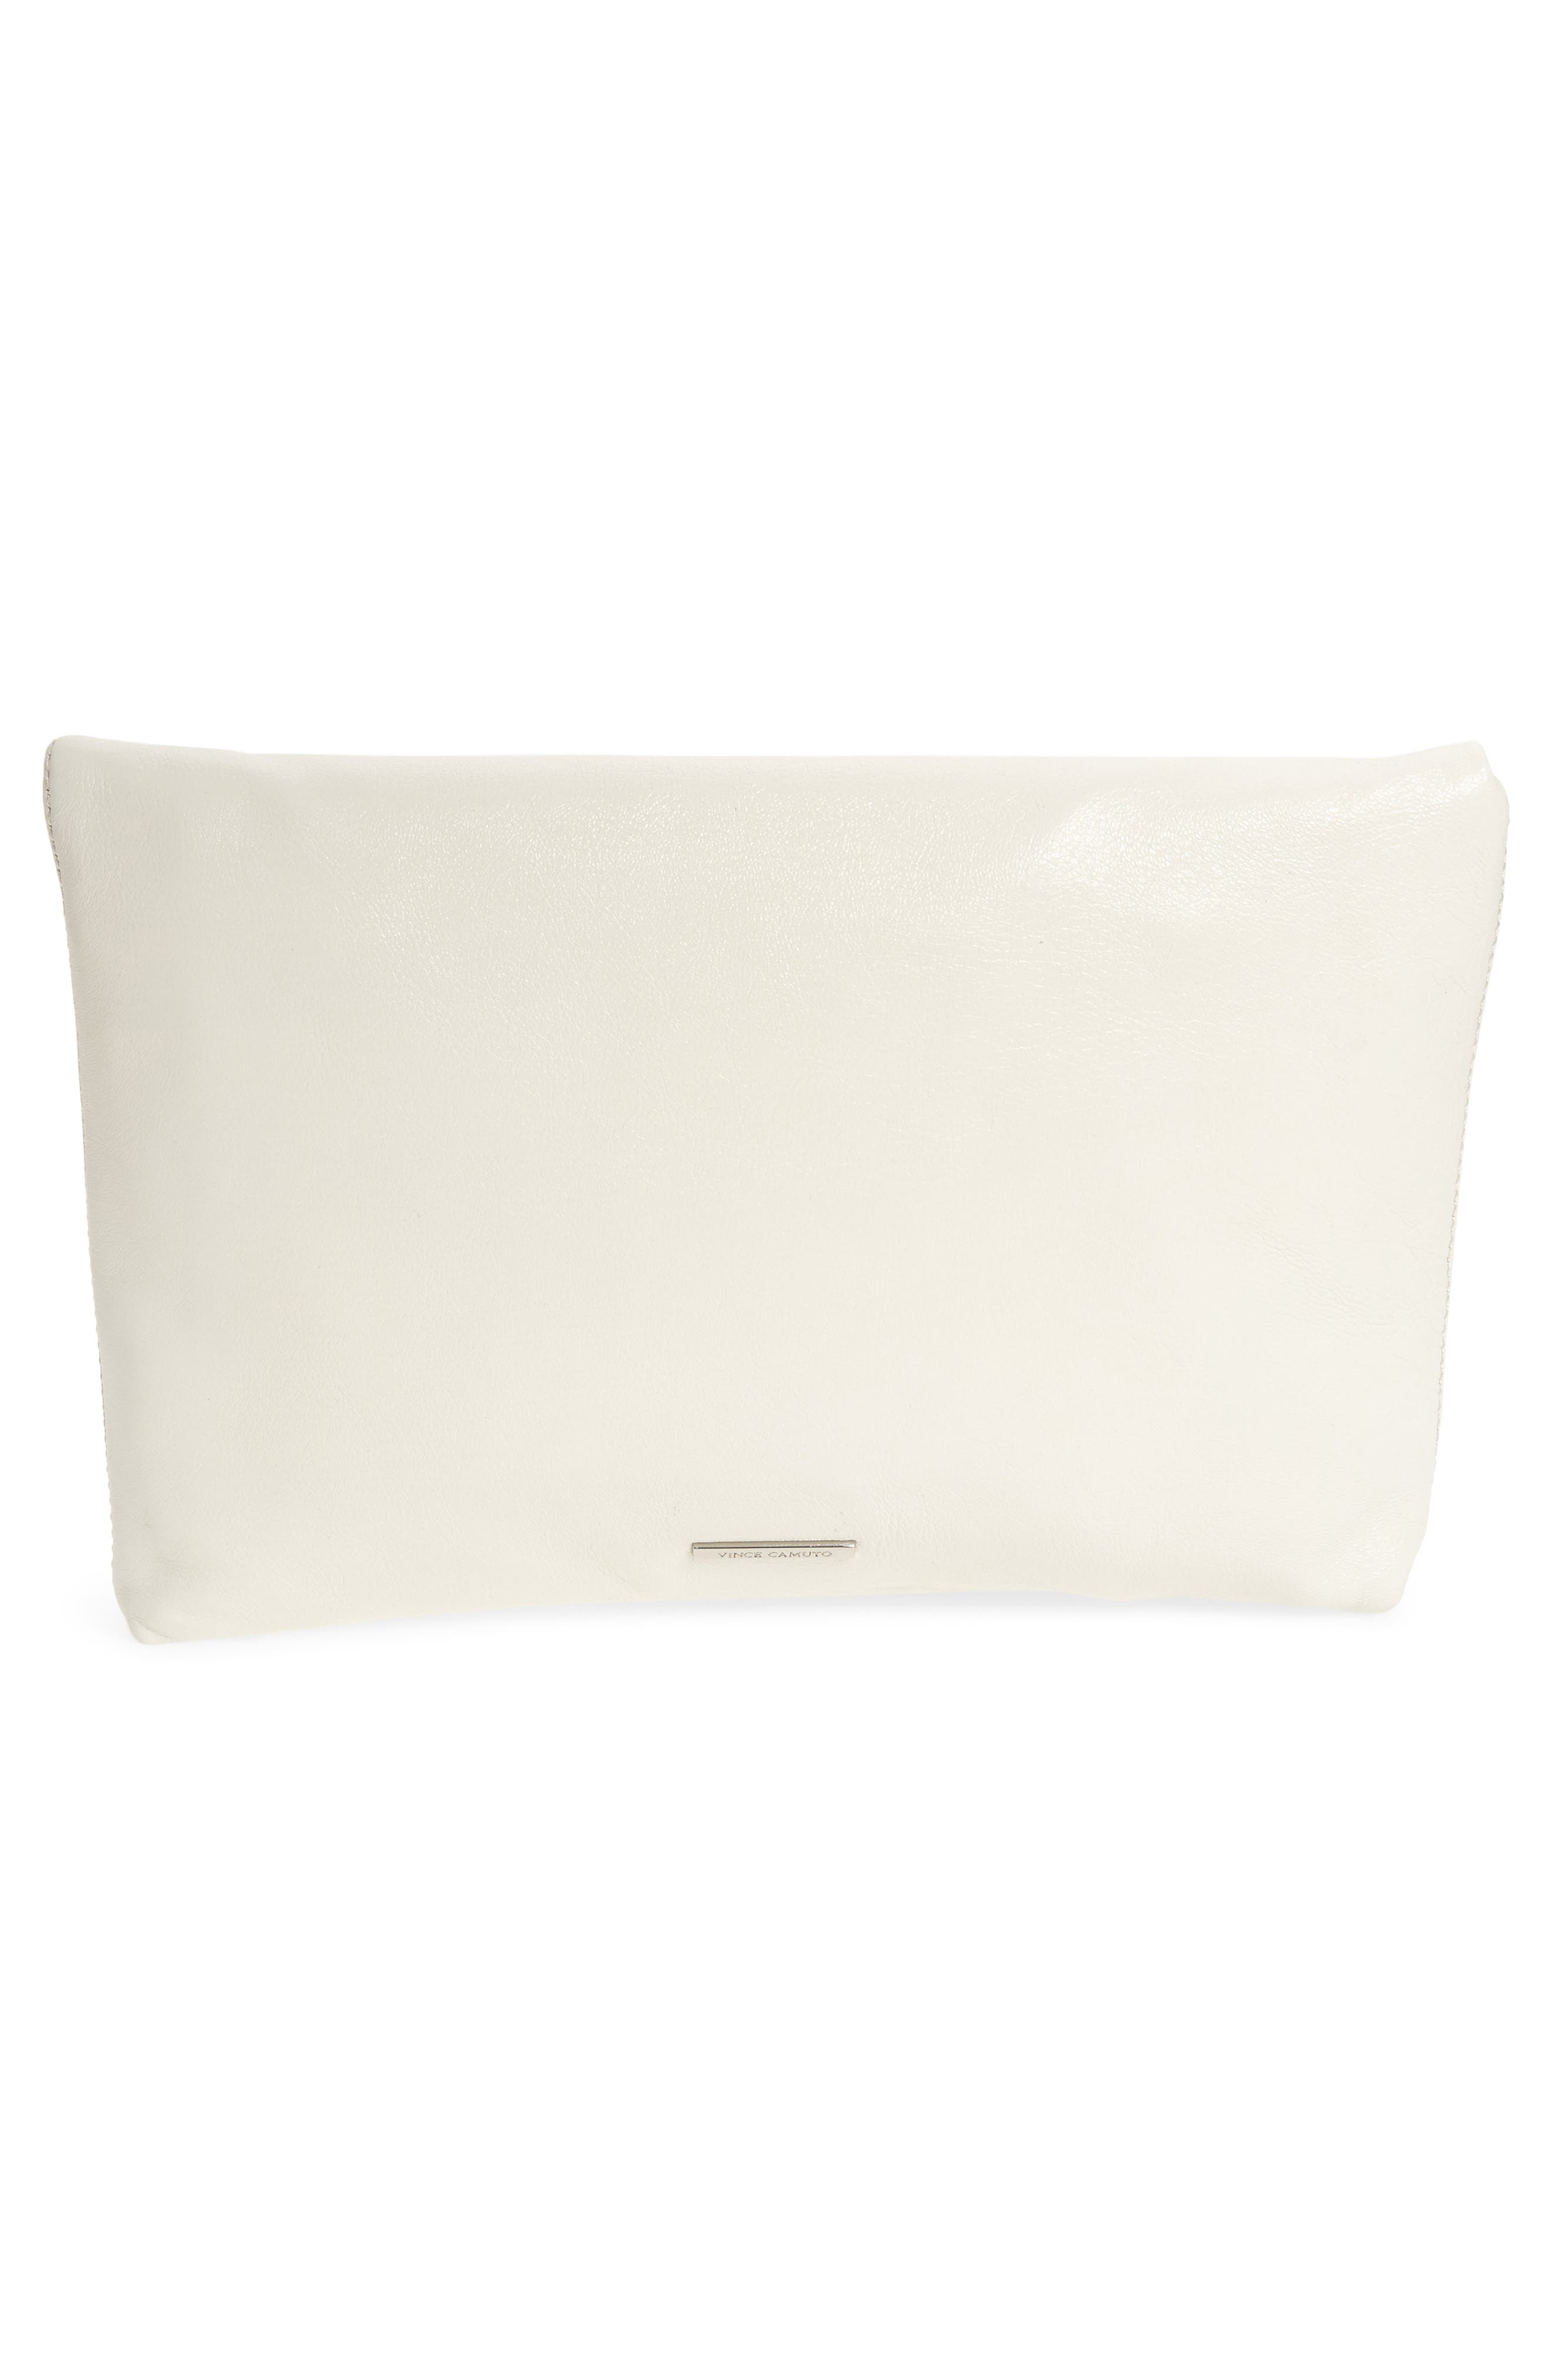 Large Marti Leather Convertible Clutch,                             Alternate thumbnail 4, color,                             SNOW WHITE